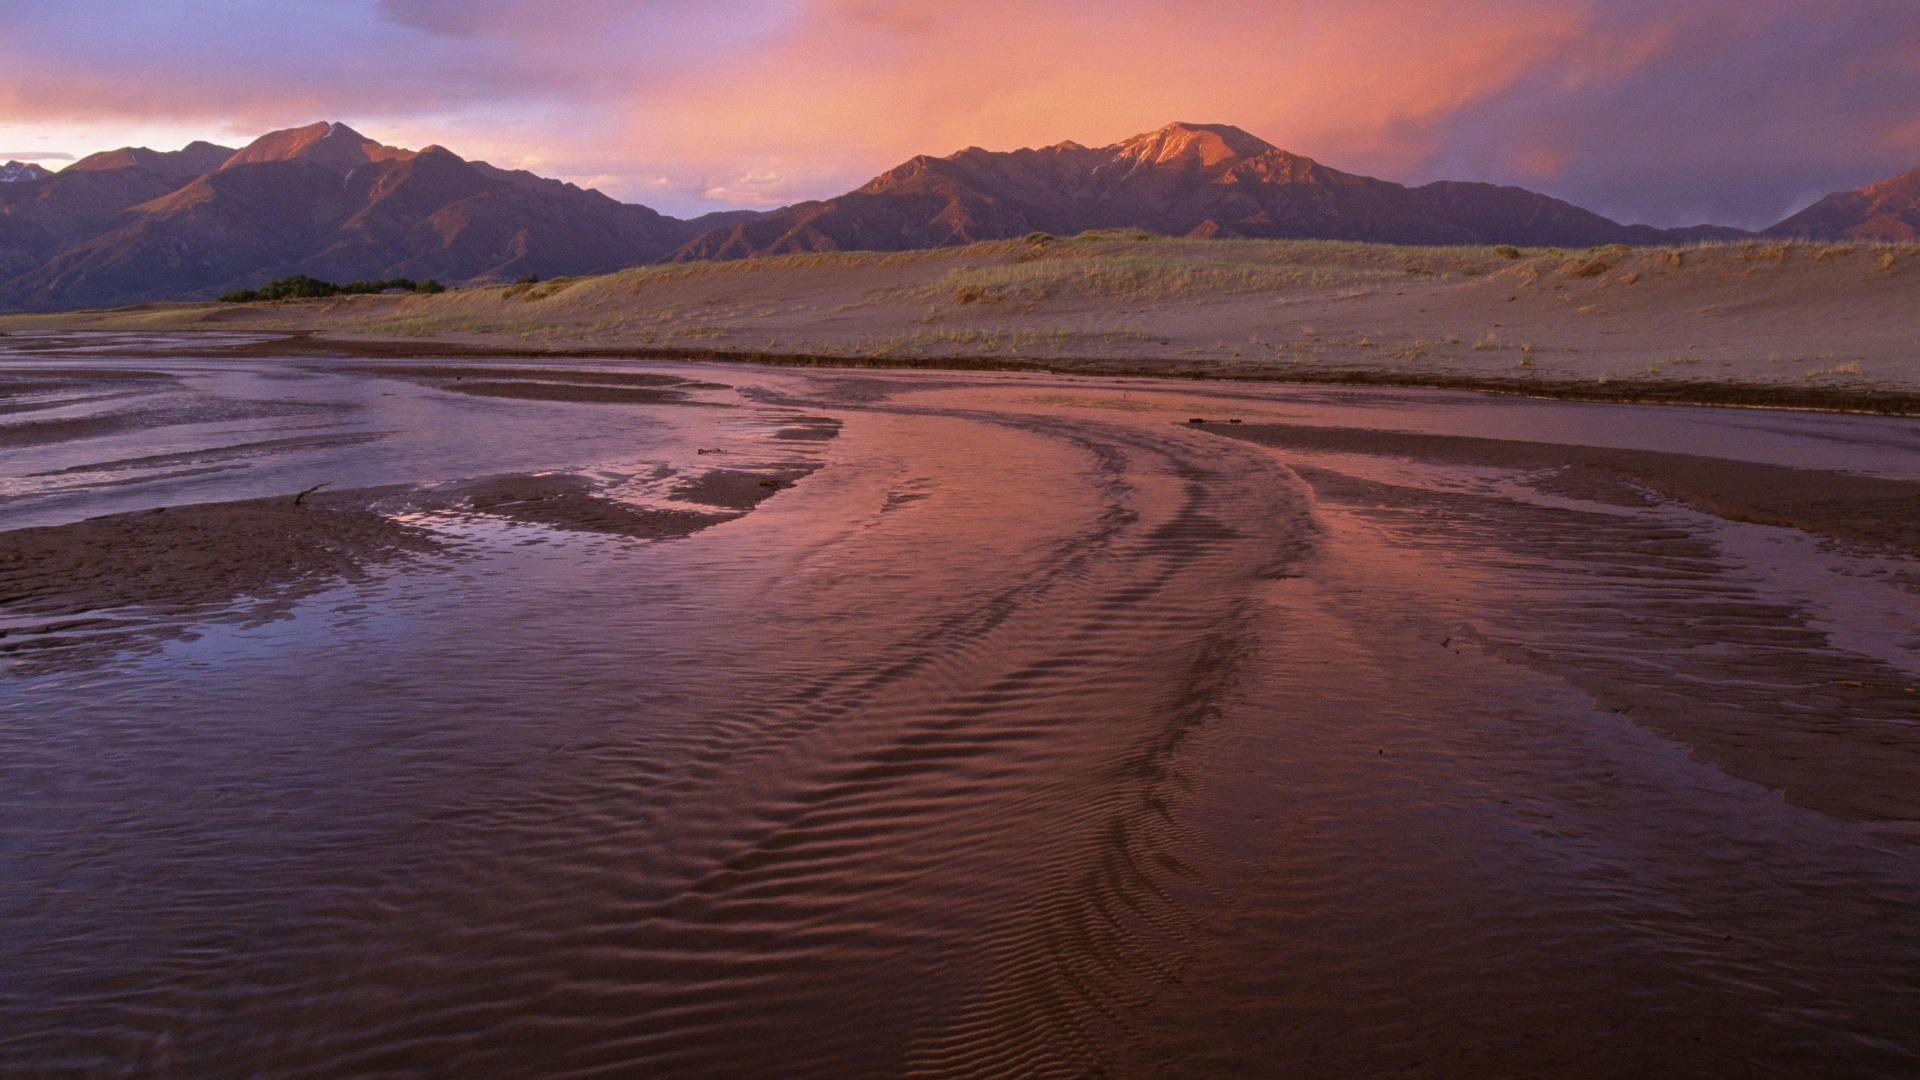 HD Great Sand Dunes National Park Wallpapers and Photos